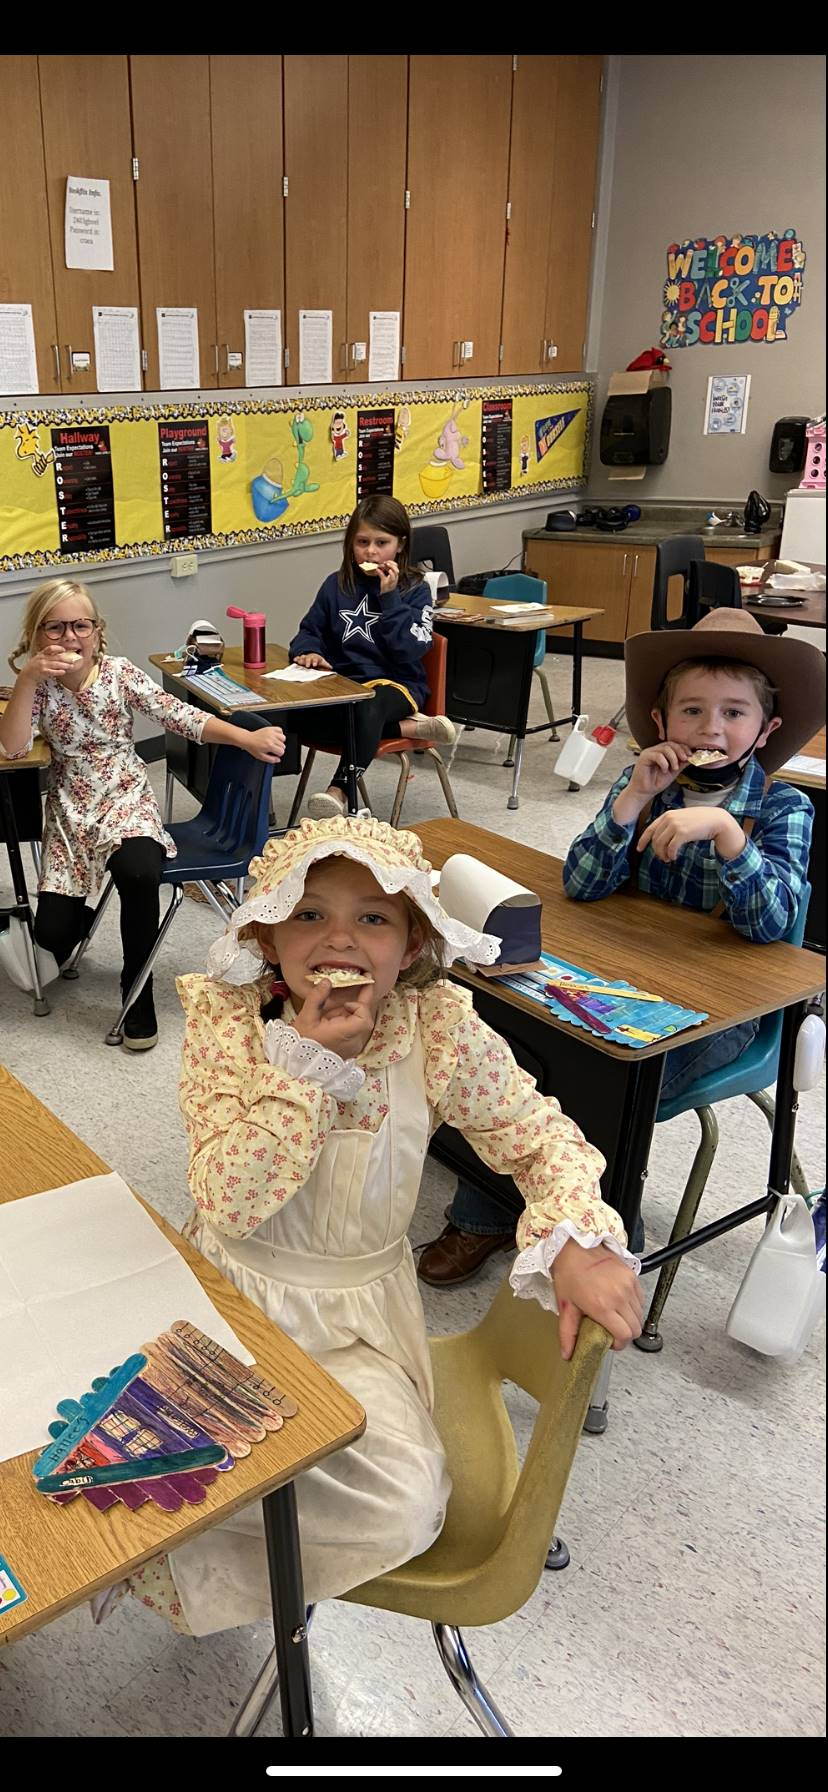 Second grade students dressed as pioneers in the classroom eating lunch